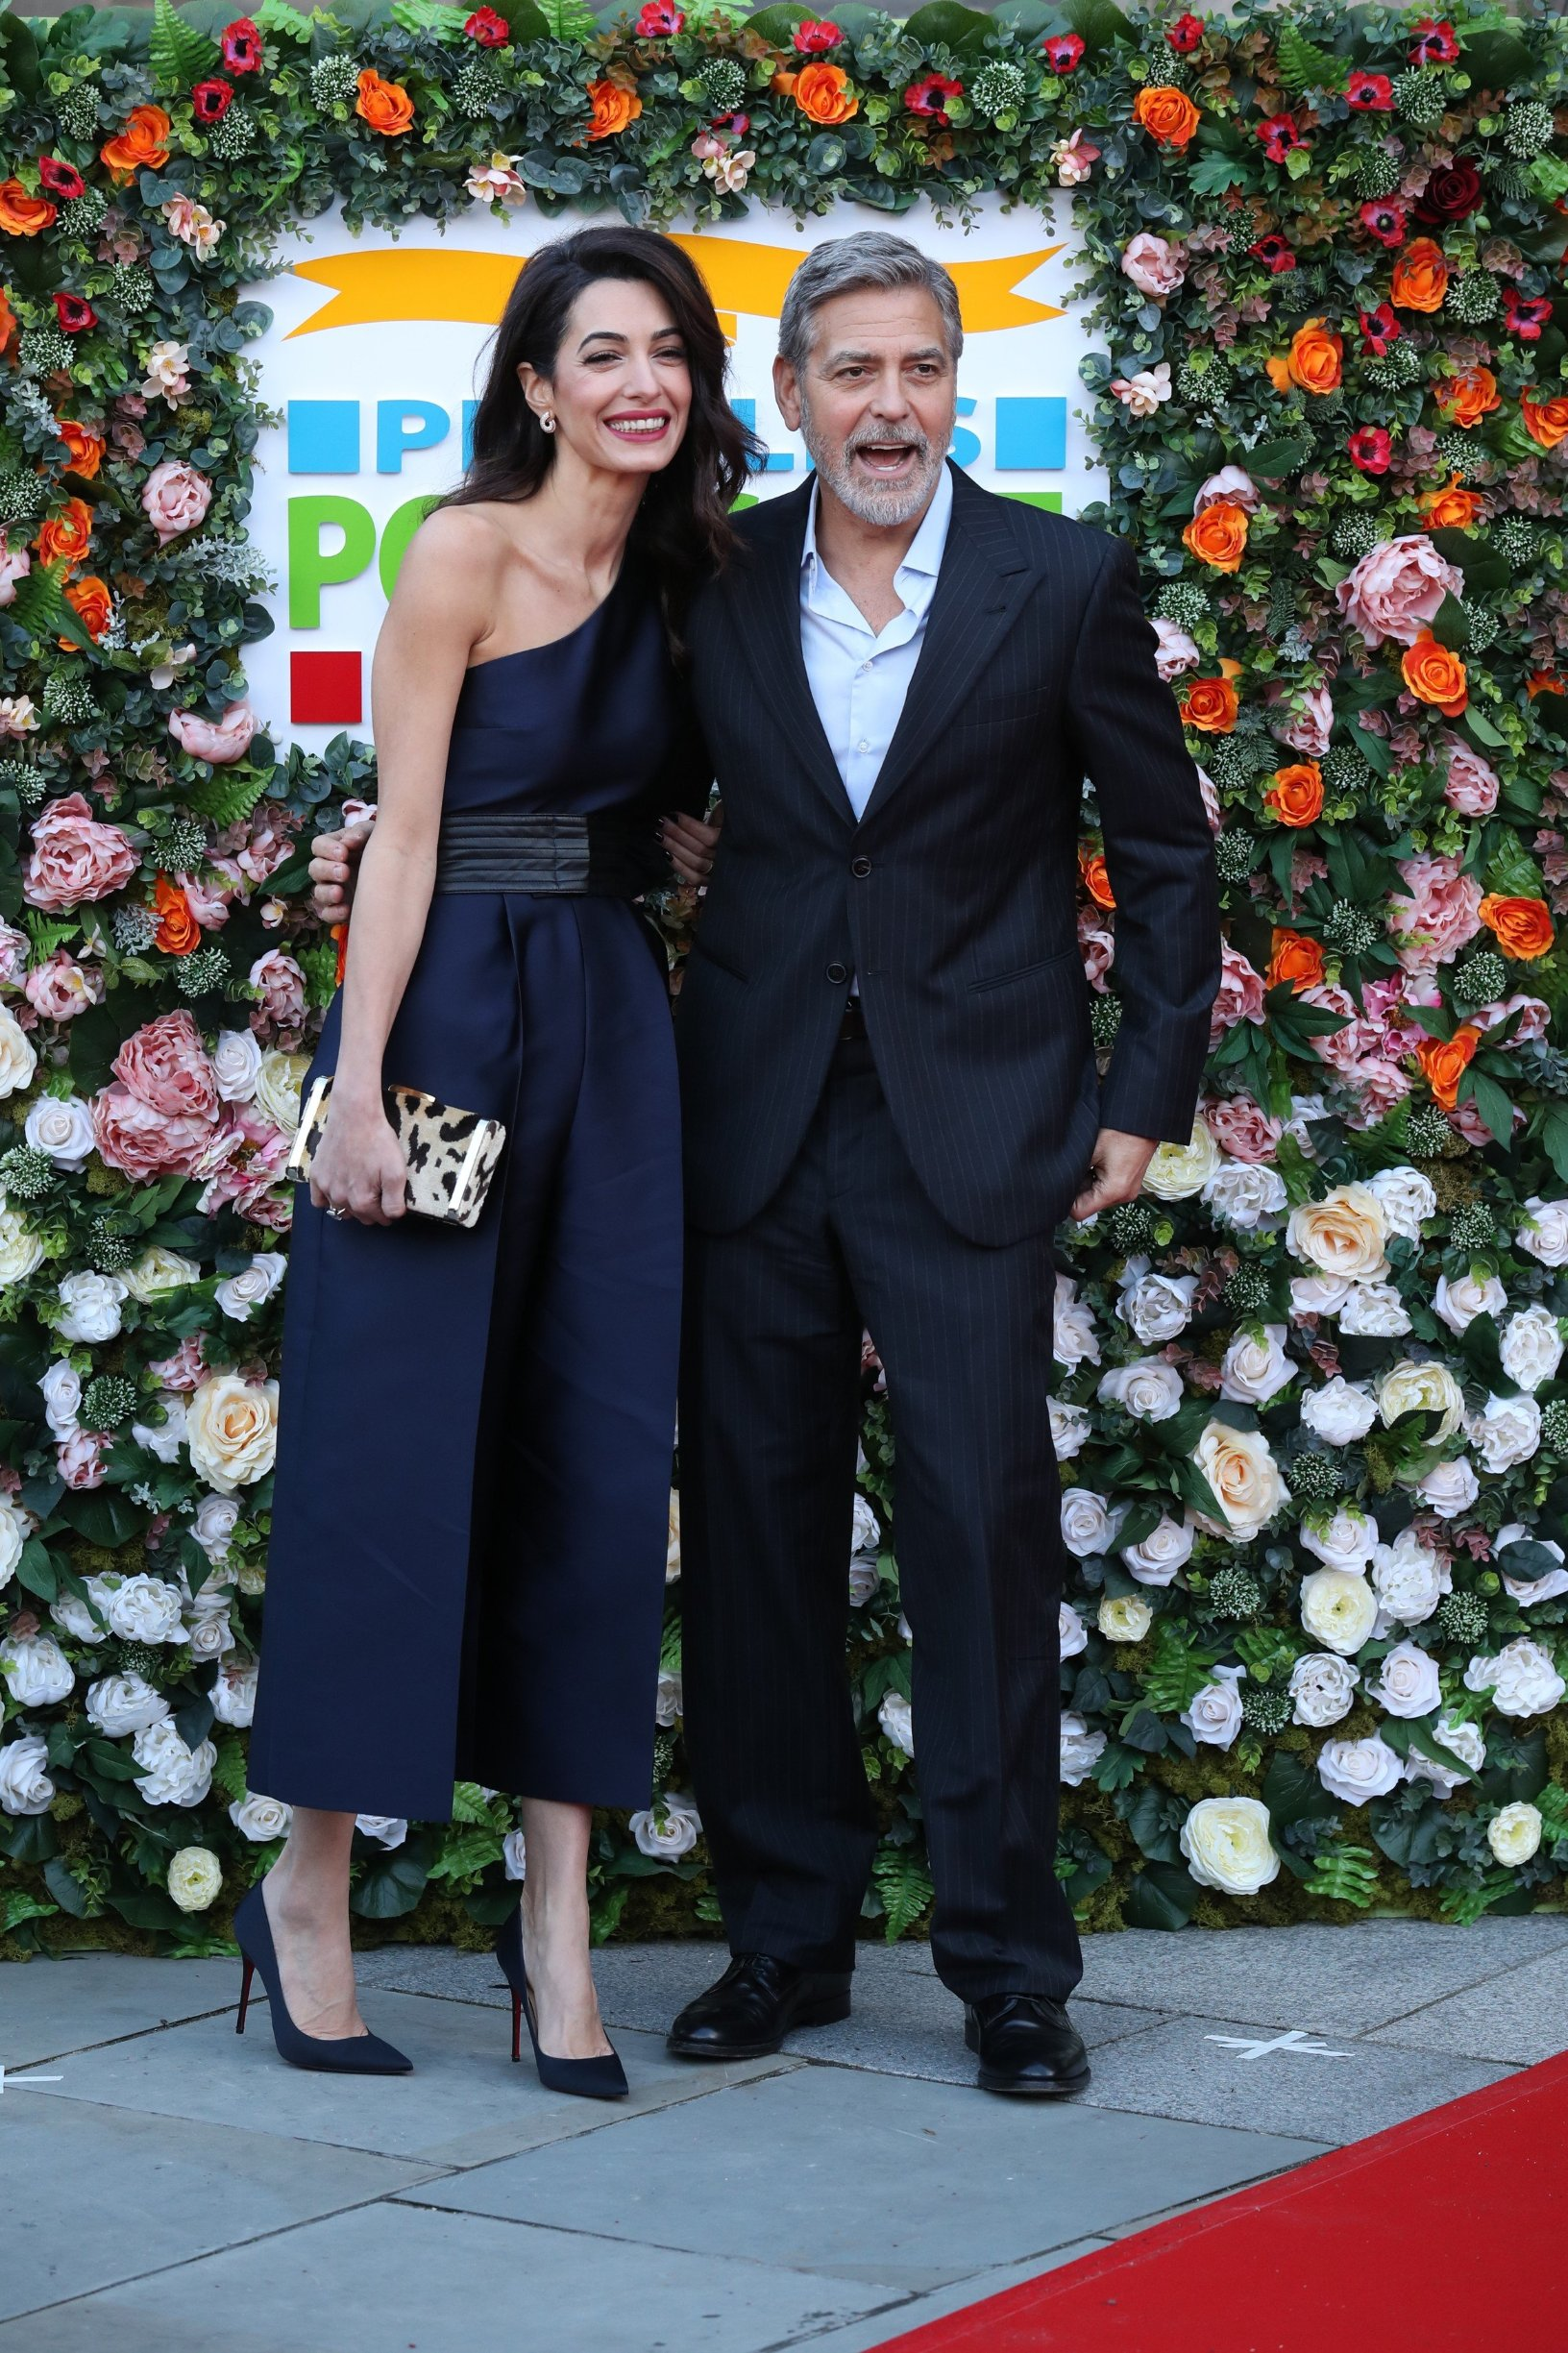 George and Amal Clooney, representing the Clooney Foundation for Justice, arrive at the People's Postcode Lottery charity gala at the McEwan Hall in Edinburgh., Image: 419447955, License: Rights-managed, Restrictions: , Model Release: no, Credit line: Profimedia, Press Association